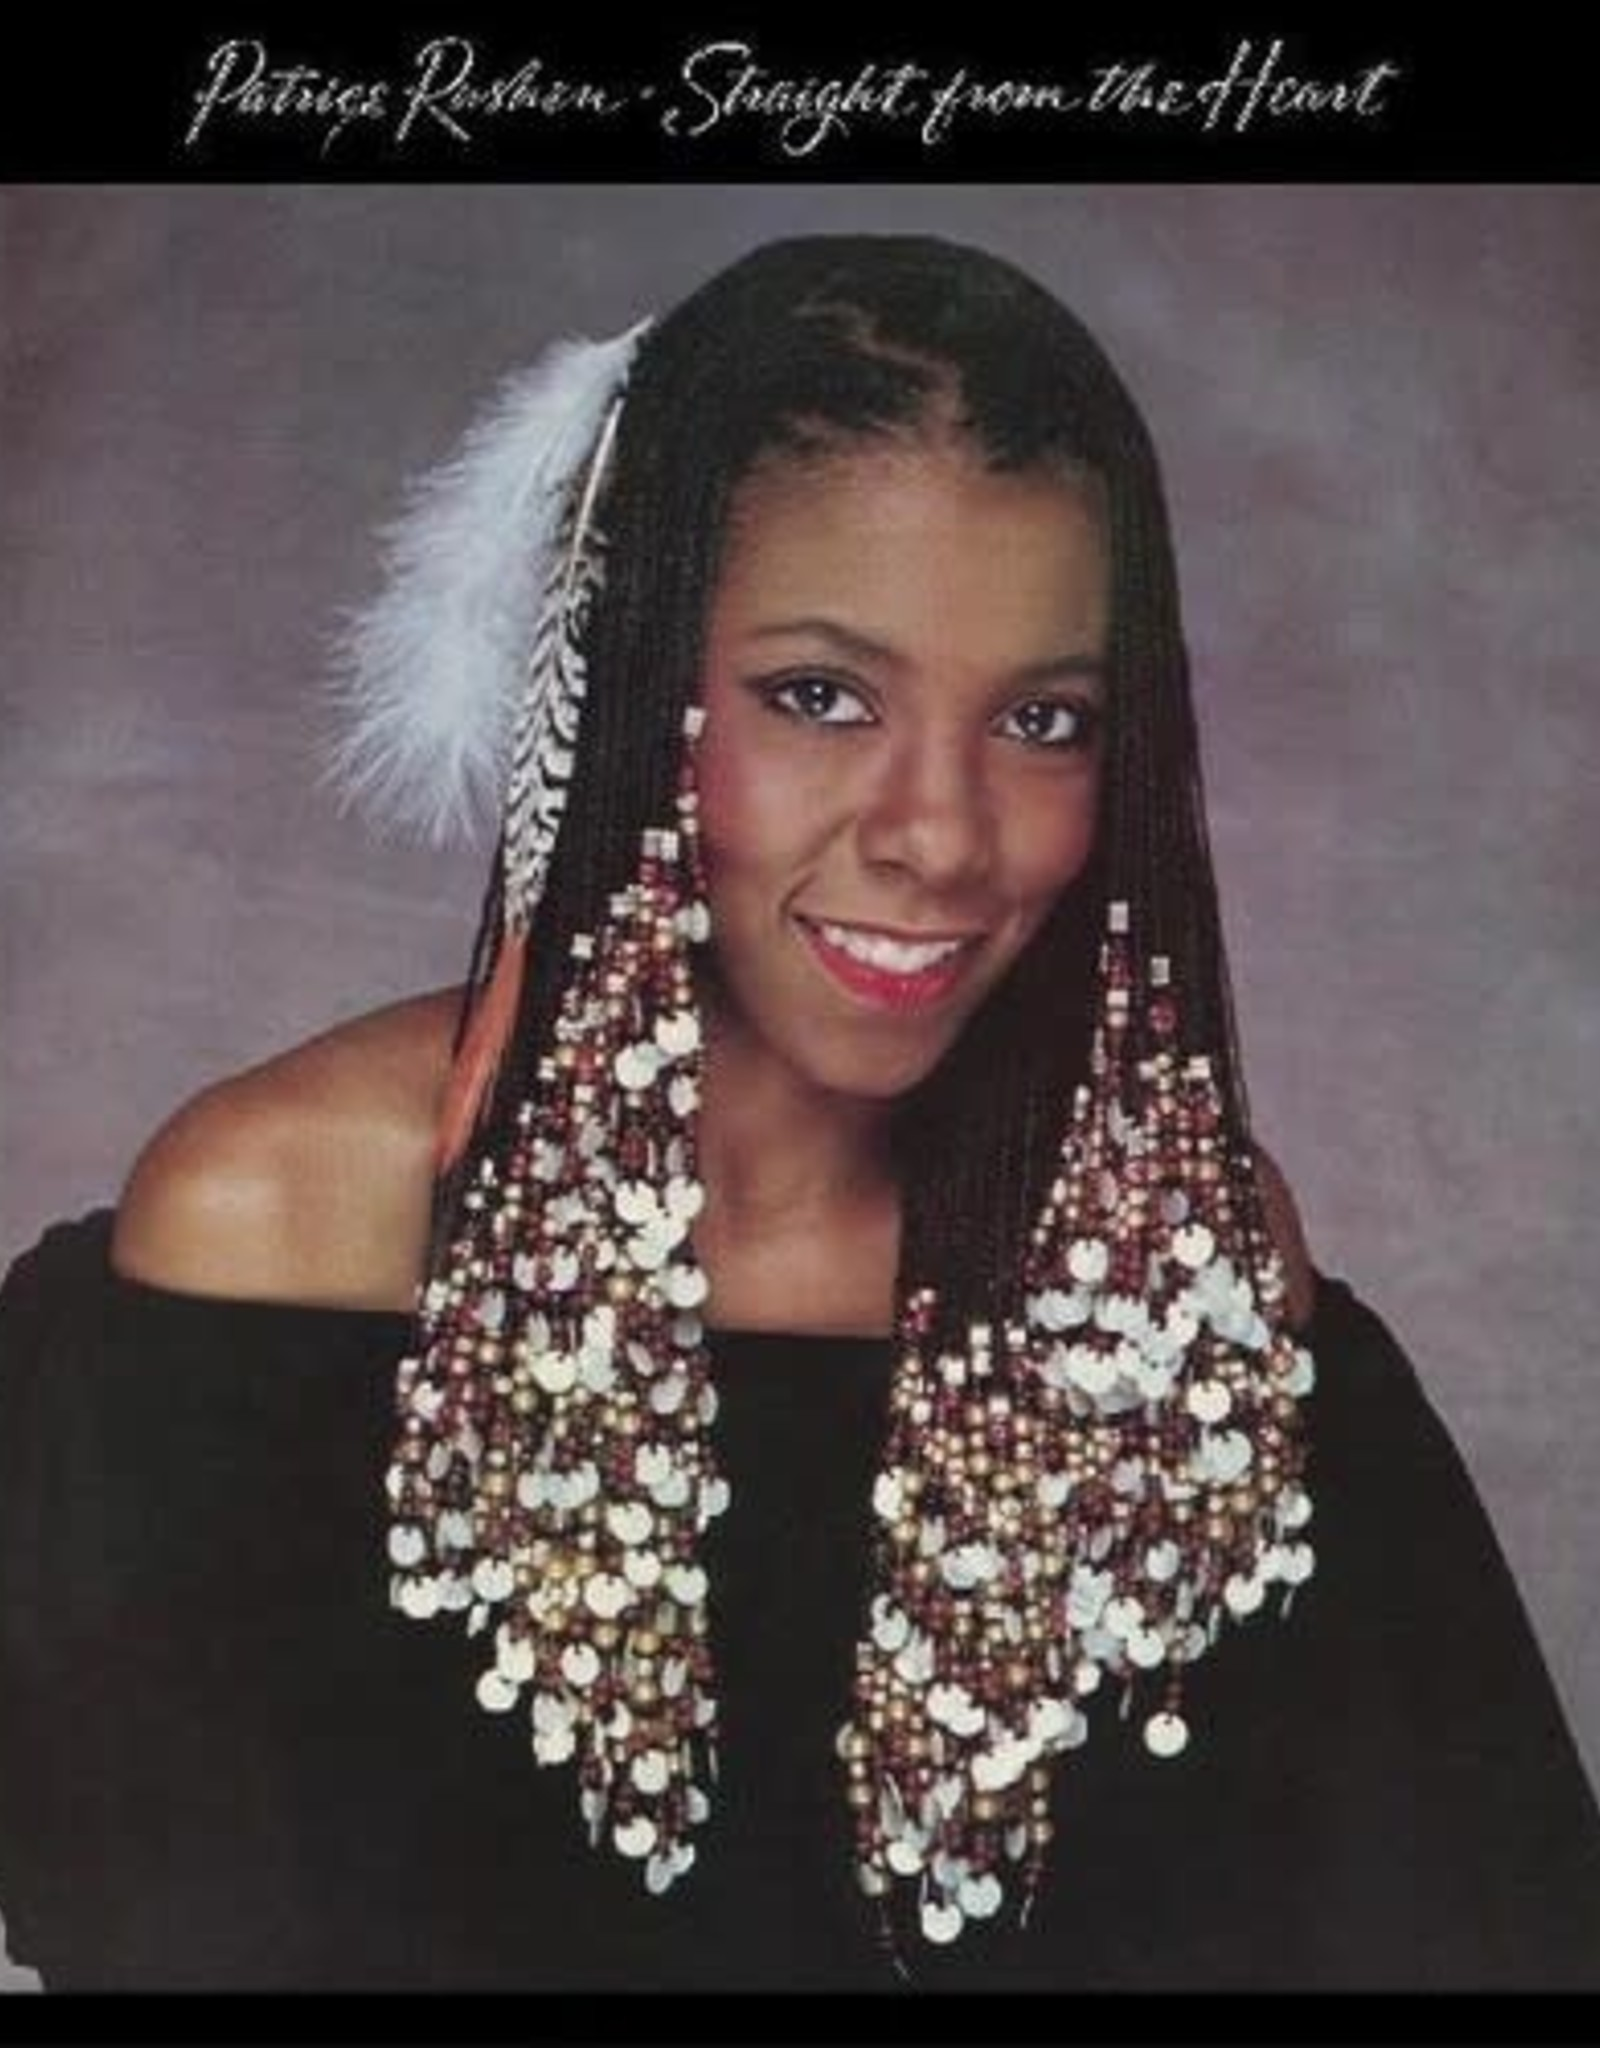 Patrice Rushen - Straight From the Heart (Definitive 2LP Edition)